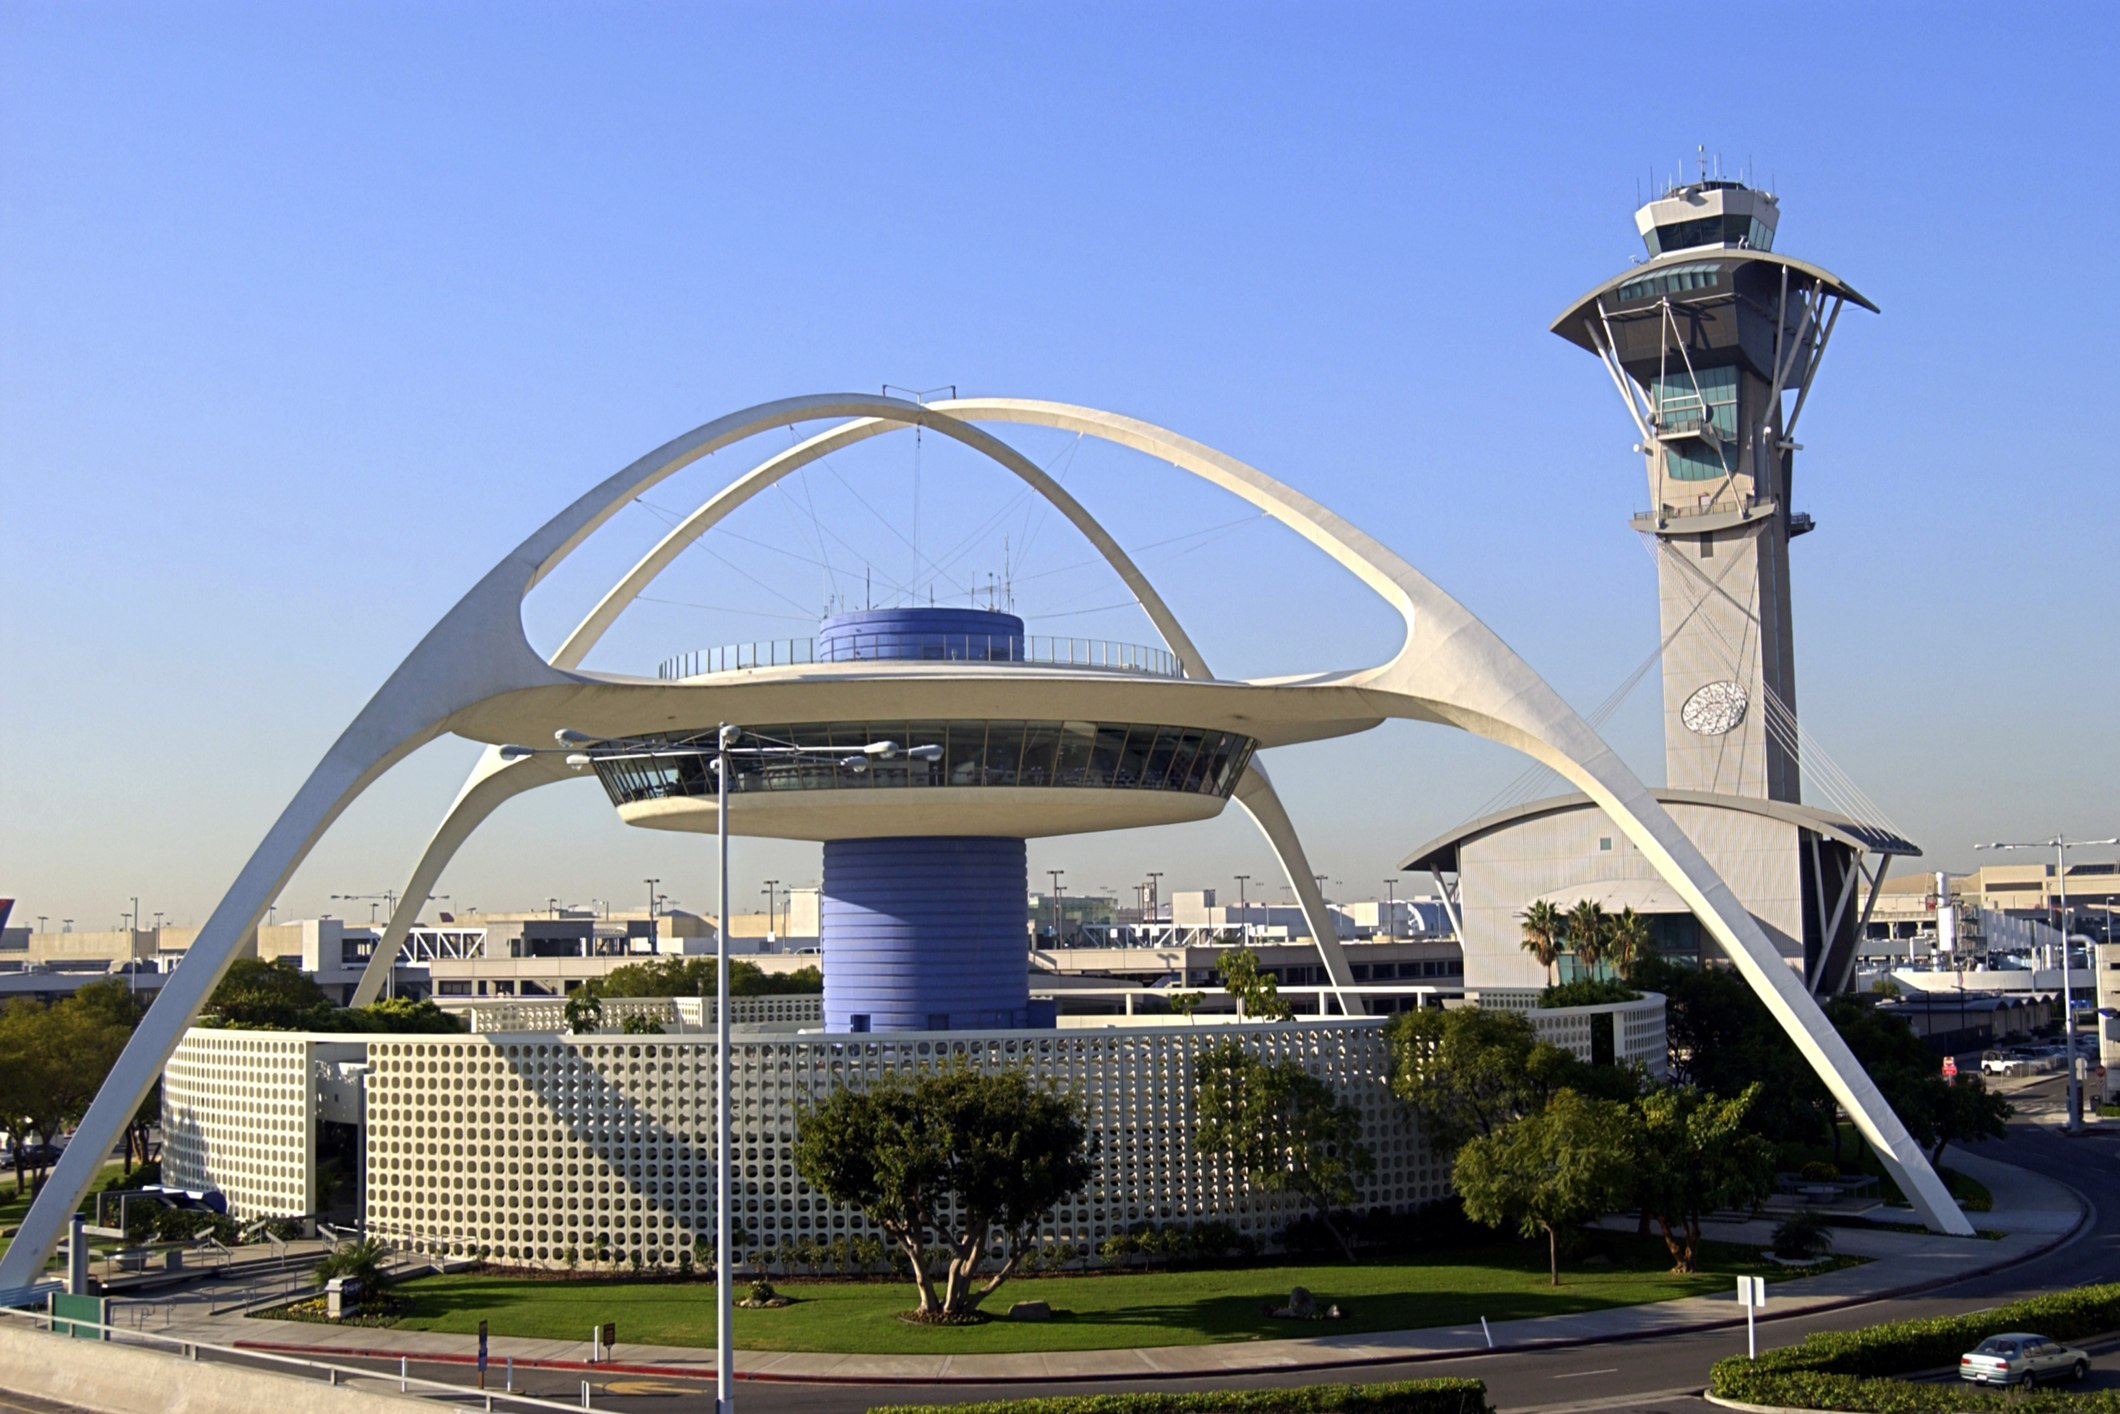 LAX airport in Los Angeles